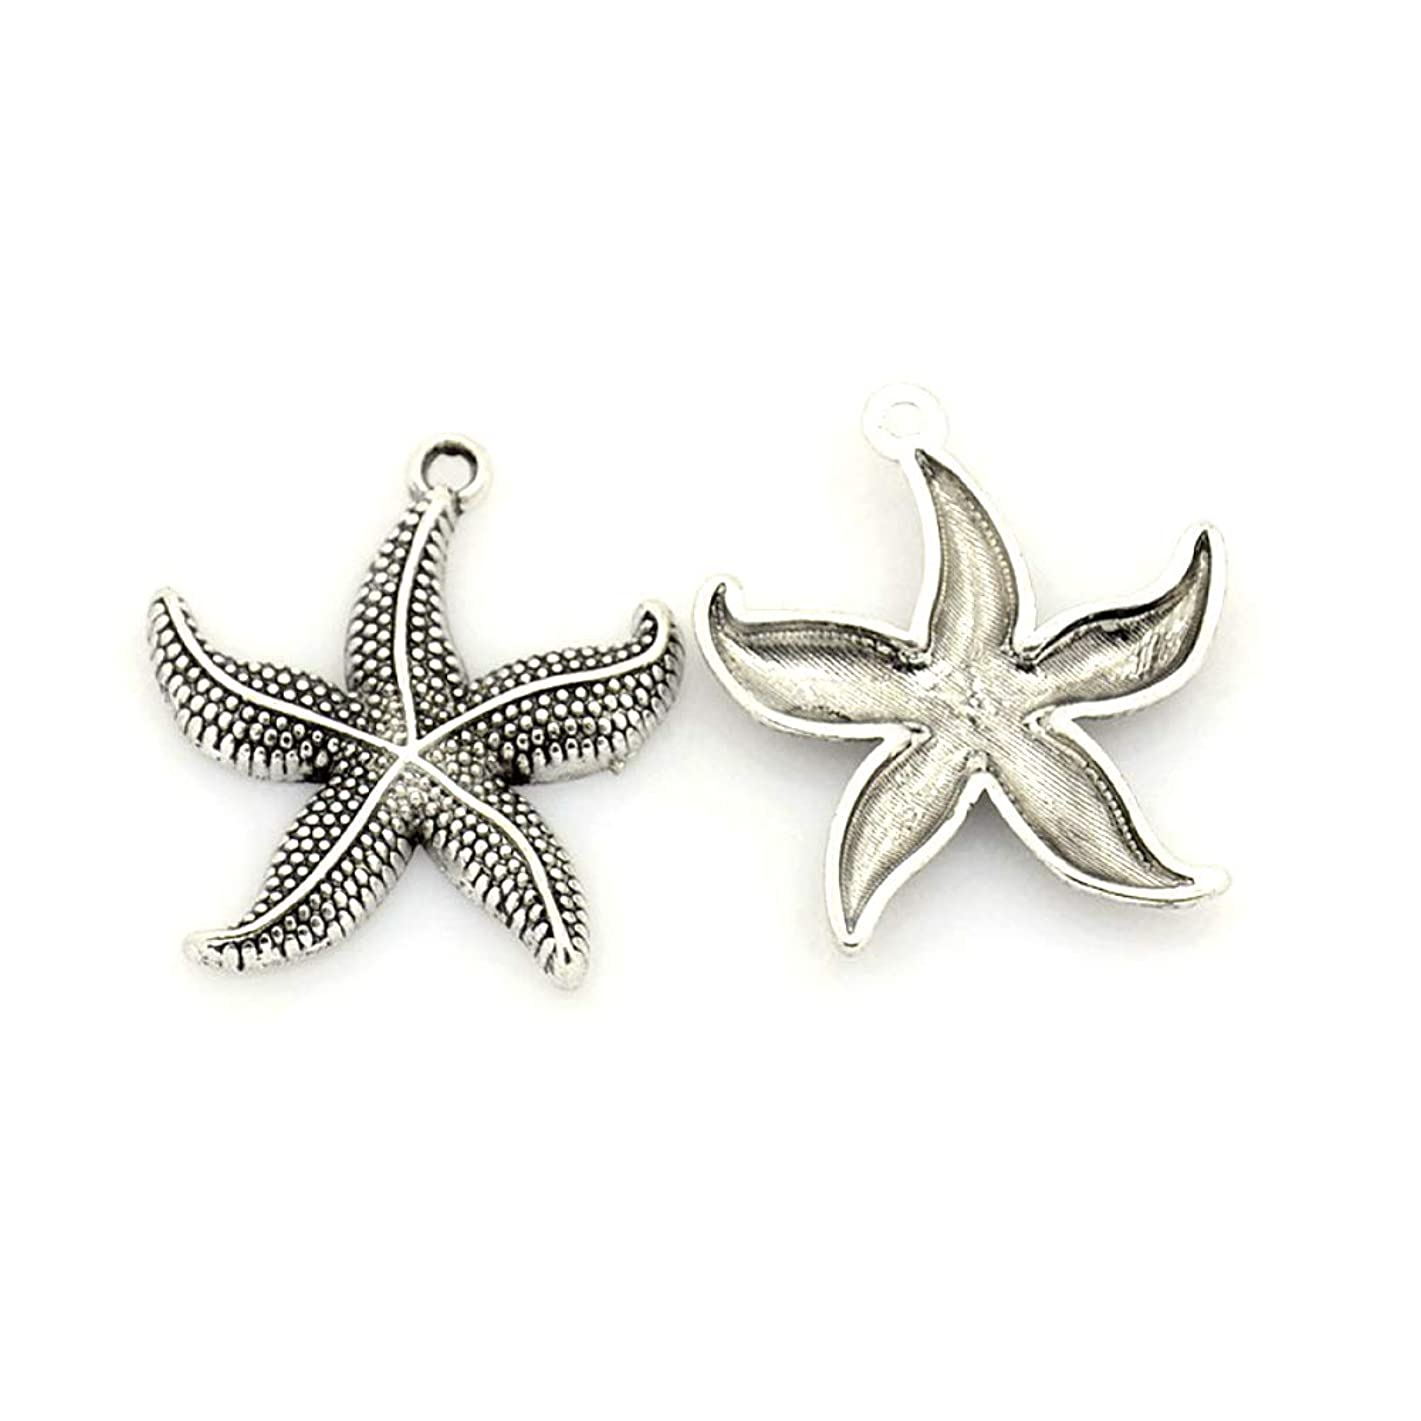 Craftdady 100PCS Tibetan Style Antique Silver Starfish Alloy Pendants Charms Jewelry Making Accessory, 26x23.5x3mm